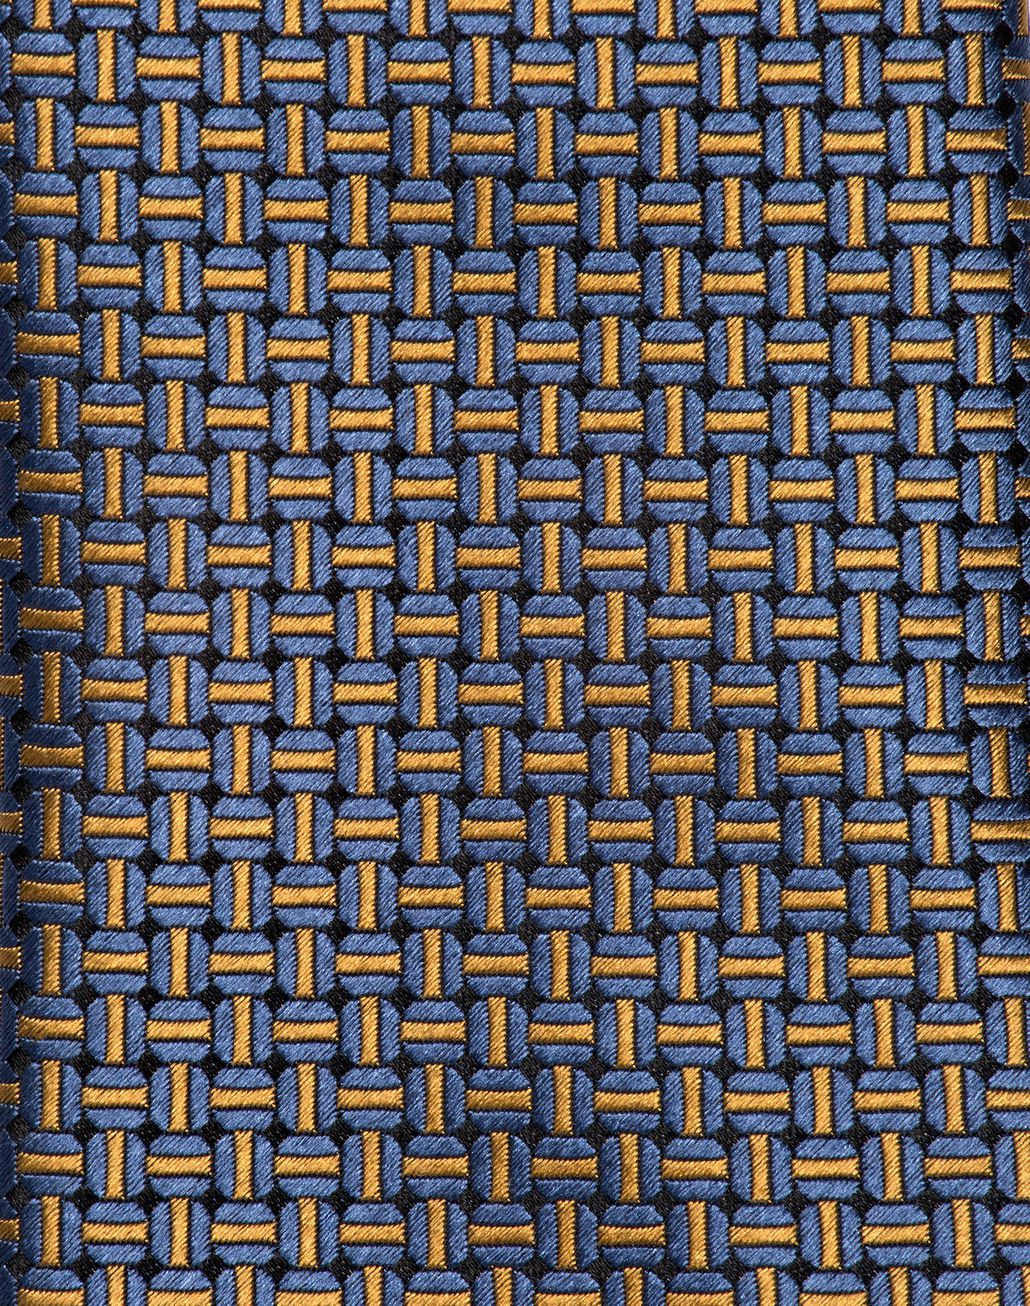 BRIONI Navy-Blue and Mustard Design Tie Tie U d